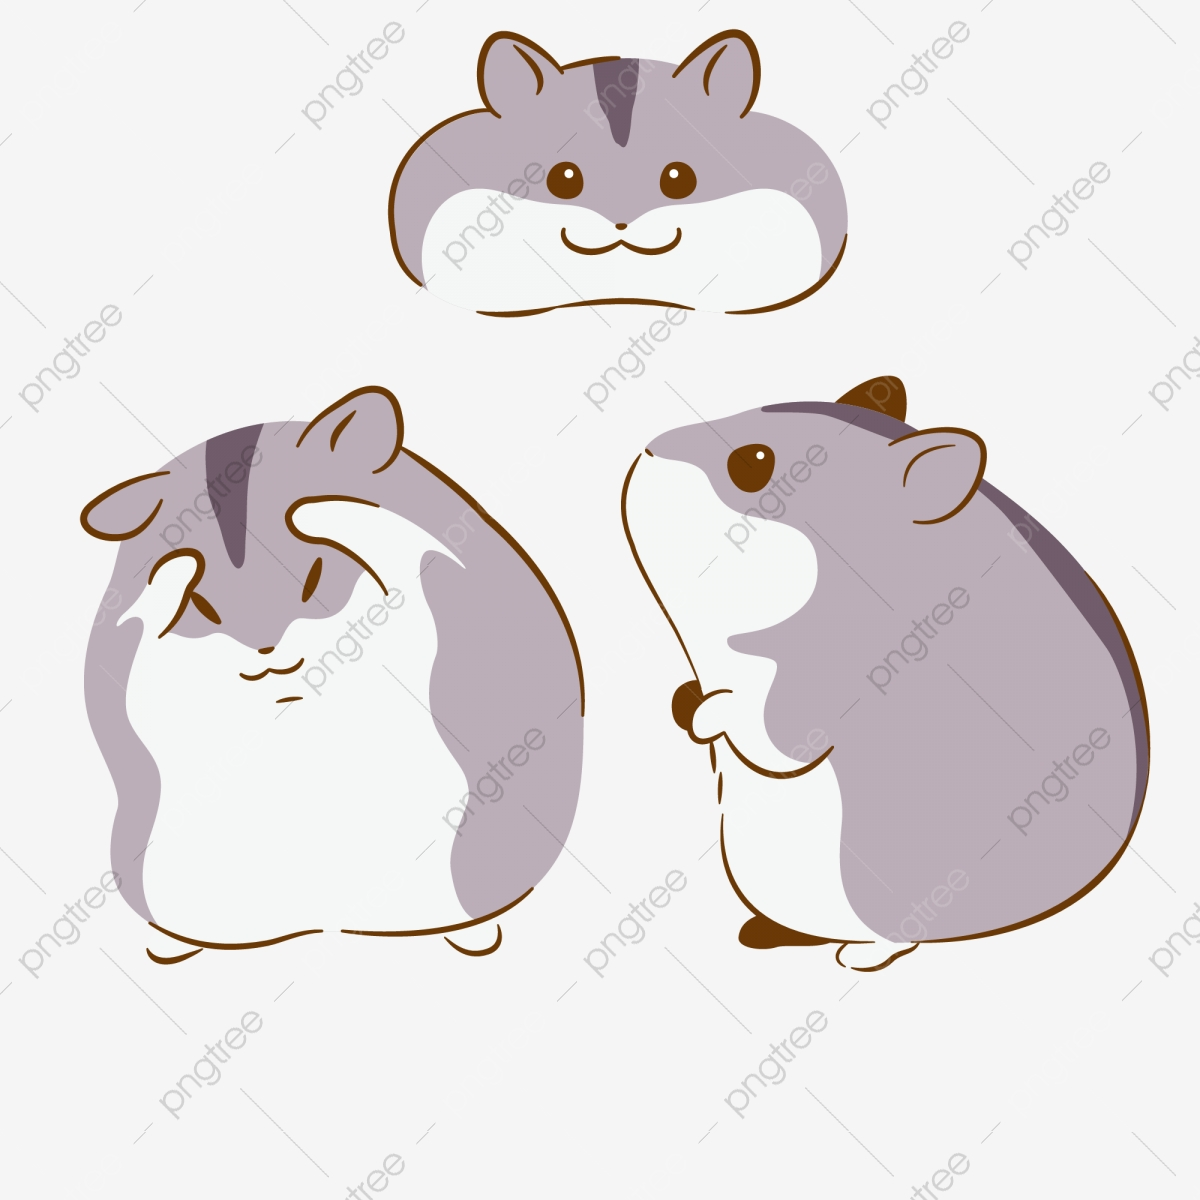 Hamster clipart simple. Cute little lovely